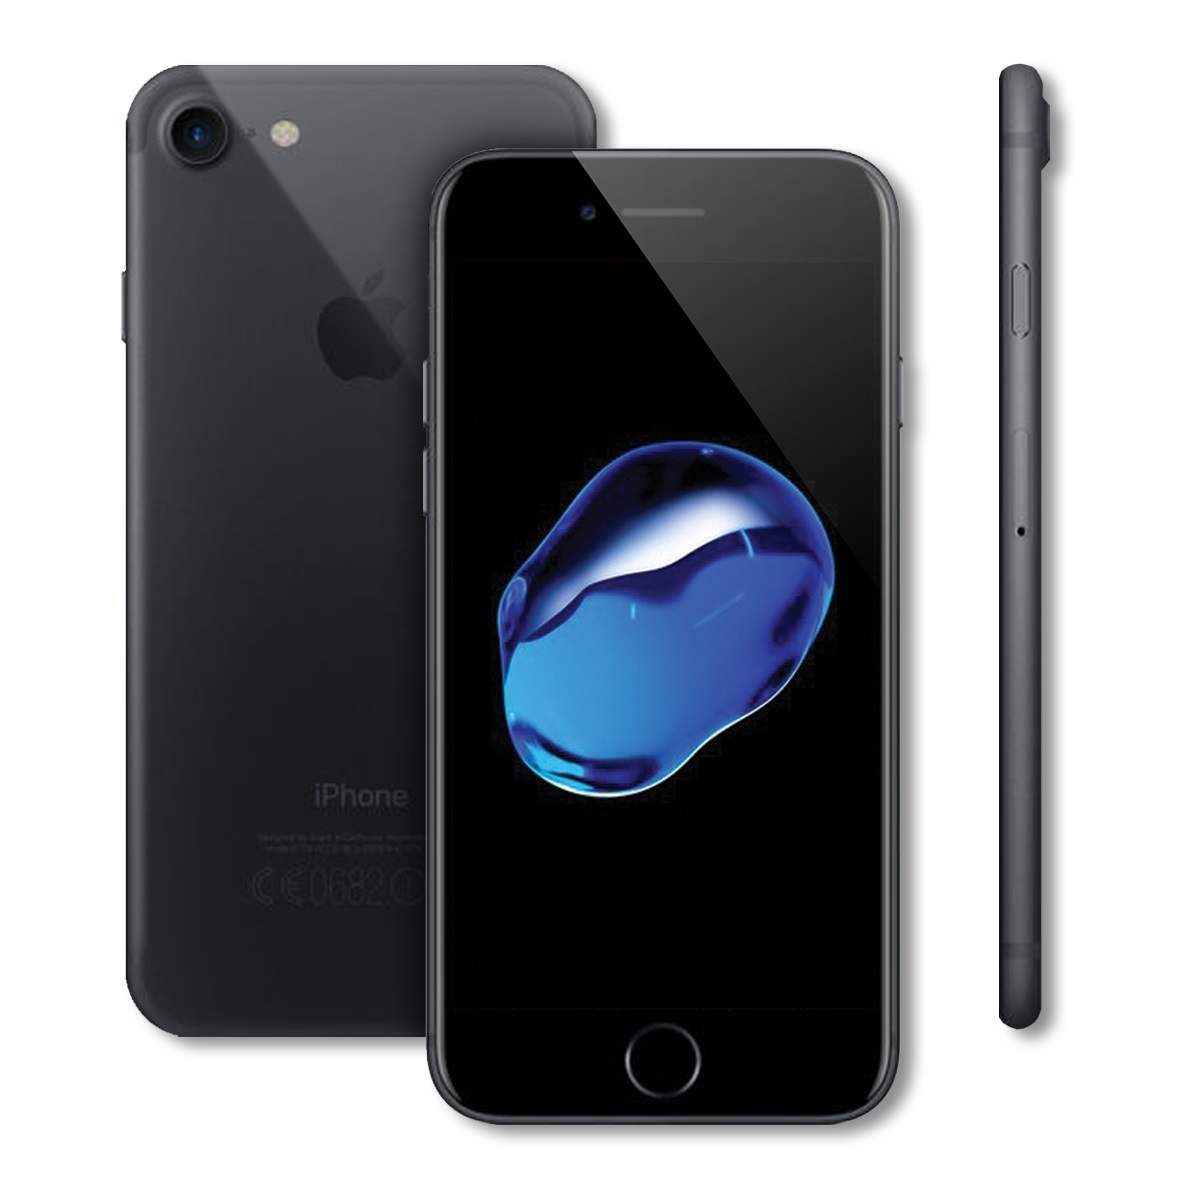 Iphone Mobile Apple Iphone 7 32gb Factory Unlocked Smartphone A1778 At Andt